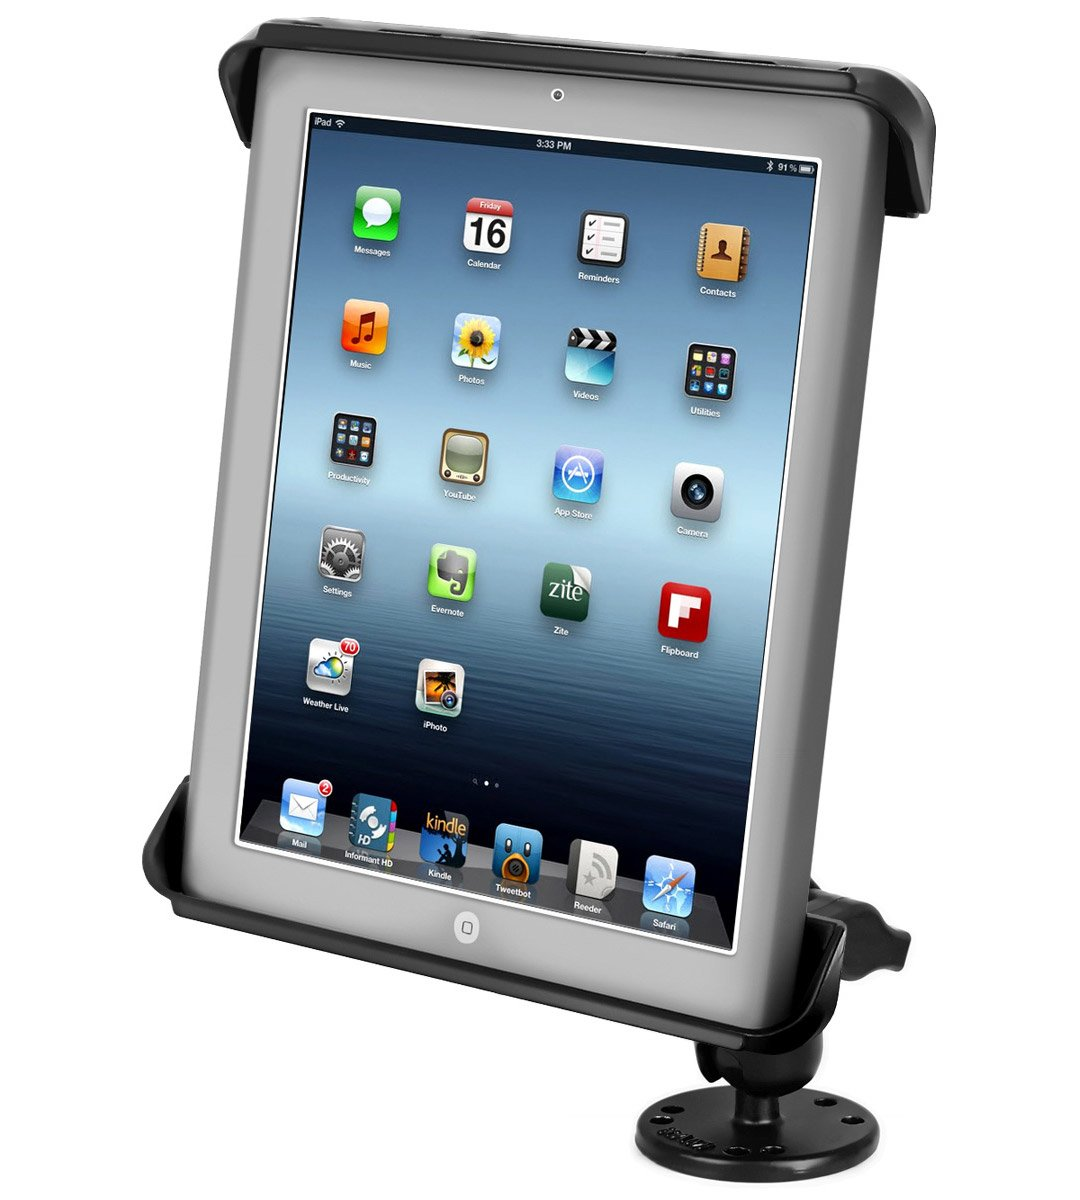 RAM MOUNTS (RAM-B-138-TAB3U Flat Surface Mount with Tab-Tite Universal Clamping Cradle for The Apple Ipad 4, Ipad 3, Ipad 2 & Ipad 1 with Or Without Light Duty Case